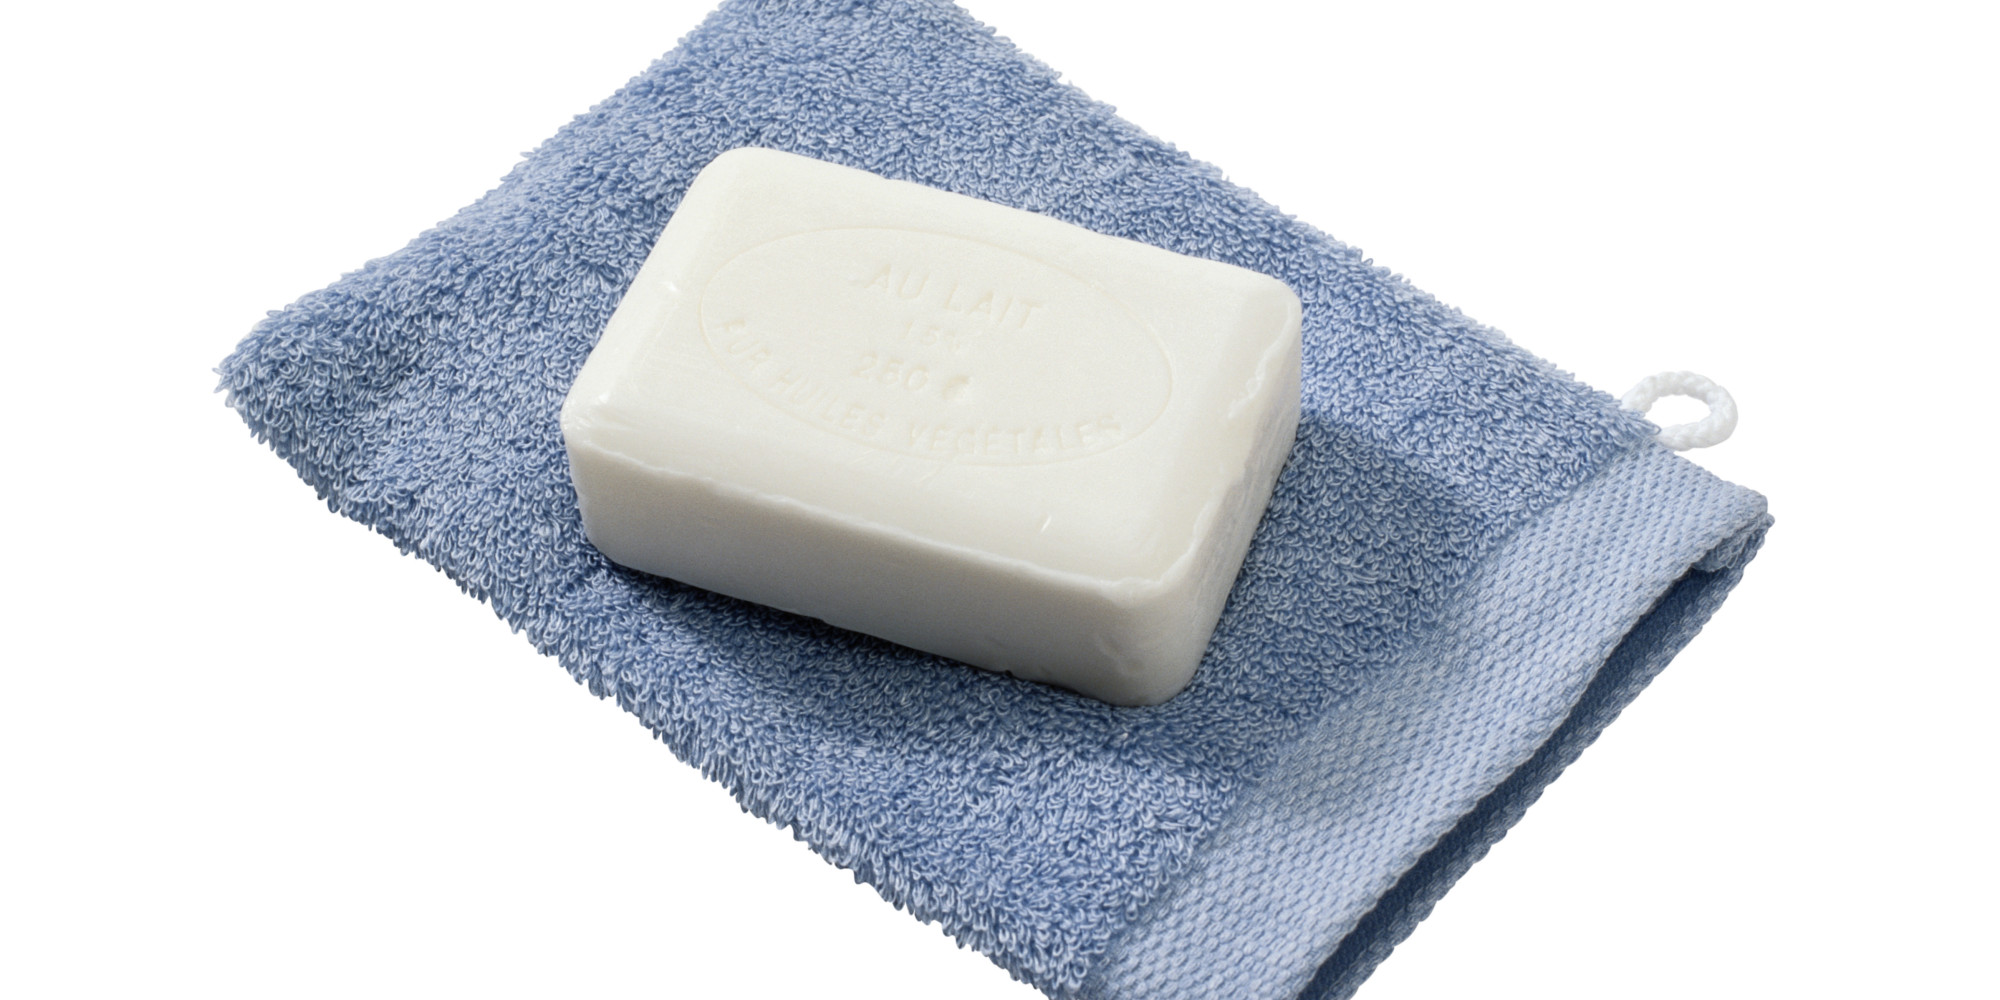 the impact of daily soap on womens How does the bill of rights affect us in your daily lives  norefrigerationno soap and cleaning  how does the bill of rights affect us today please be.